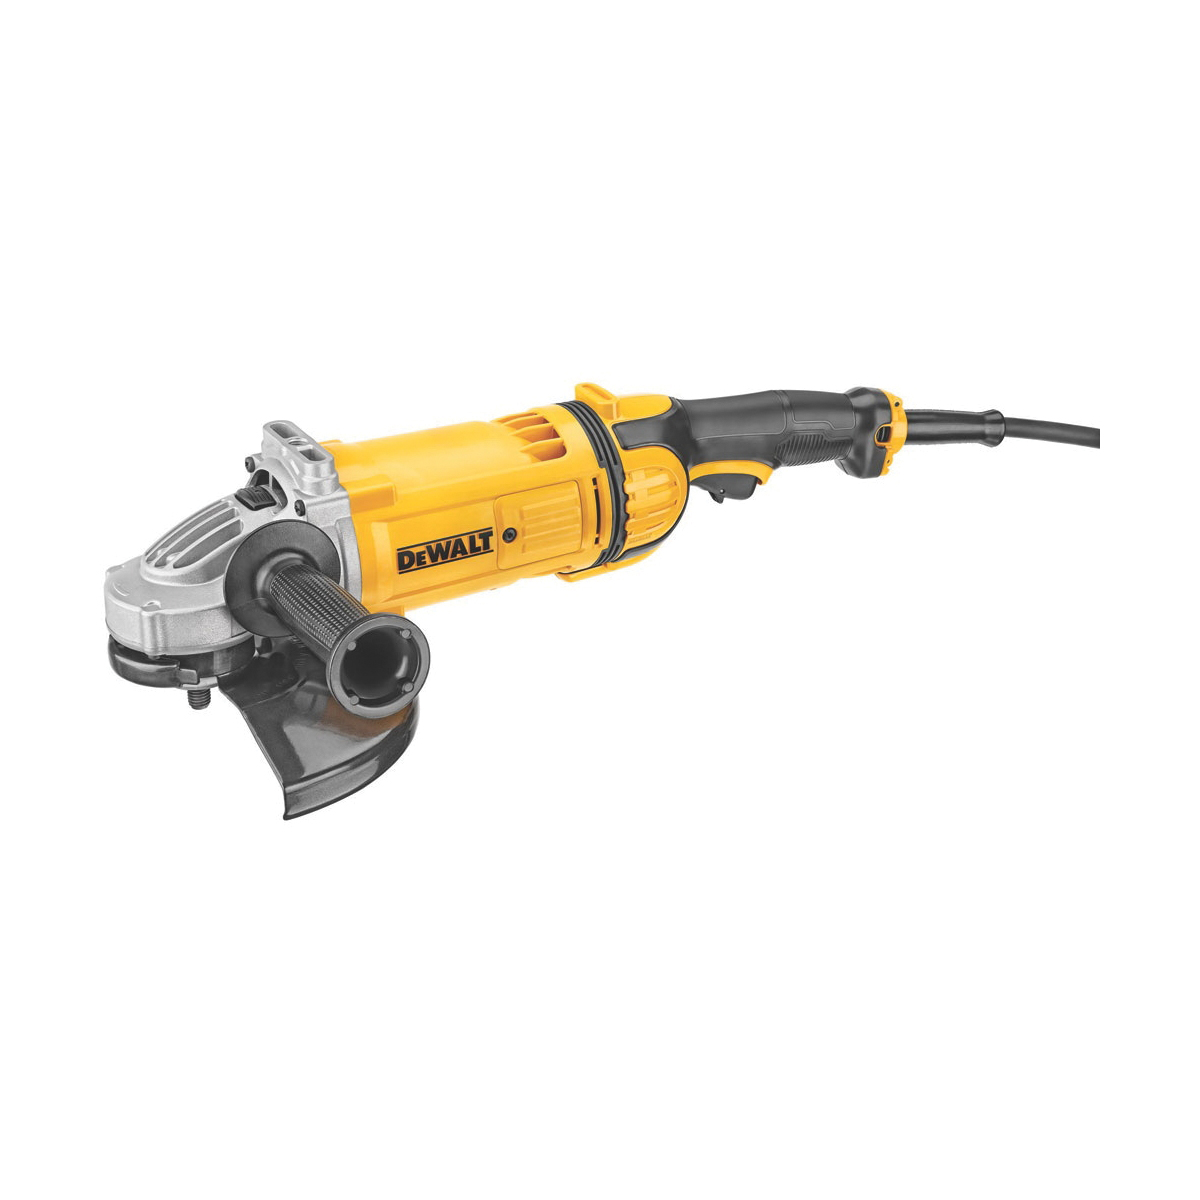 DeWALT® DWE4559N Large Angle Grinder, 9 in Dia Wheel, 5/8-11 Arbor/Shank, 120 VAC, Yellow, Yes Dust Management, Lock-Off Trigger Switch Switch, Tool Only